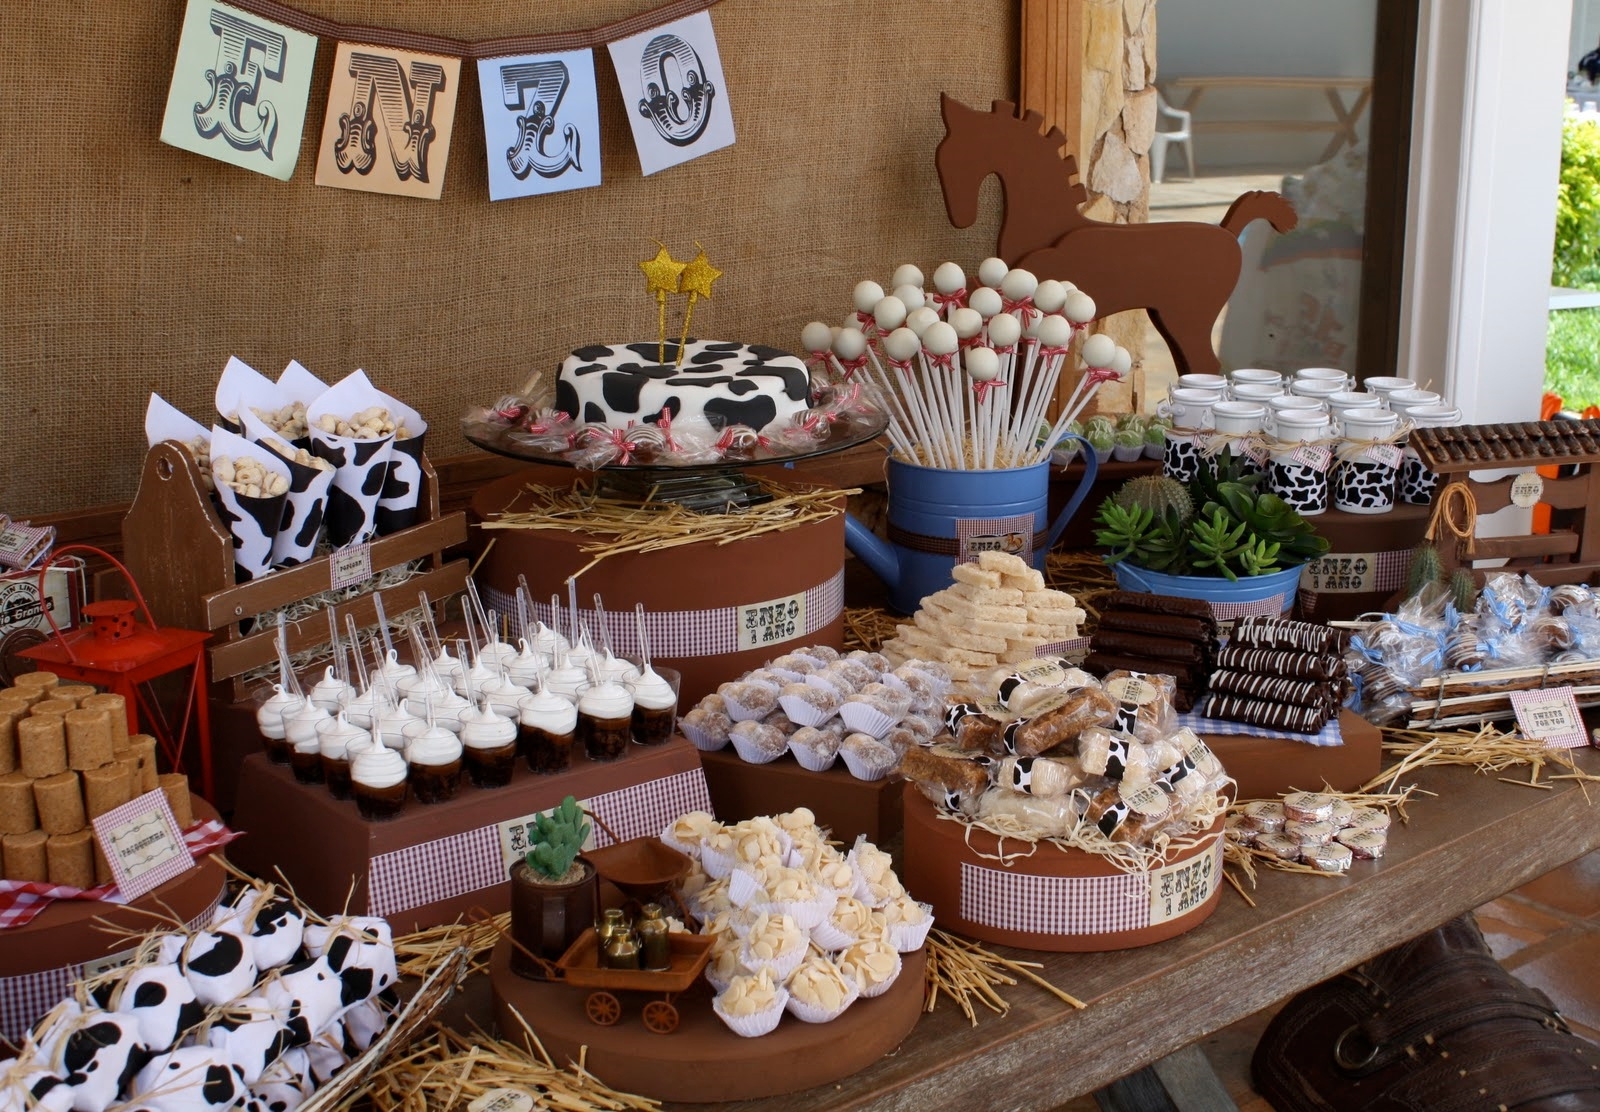 10 Attractive Western Party Ideas For Adults ideas of western party decorations that you can pick home design